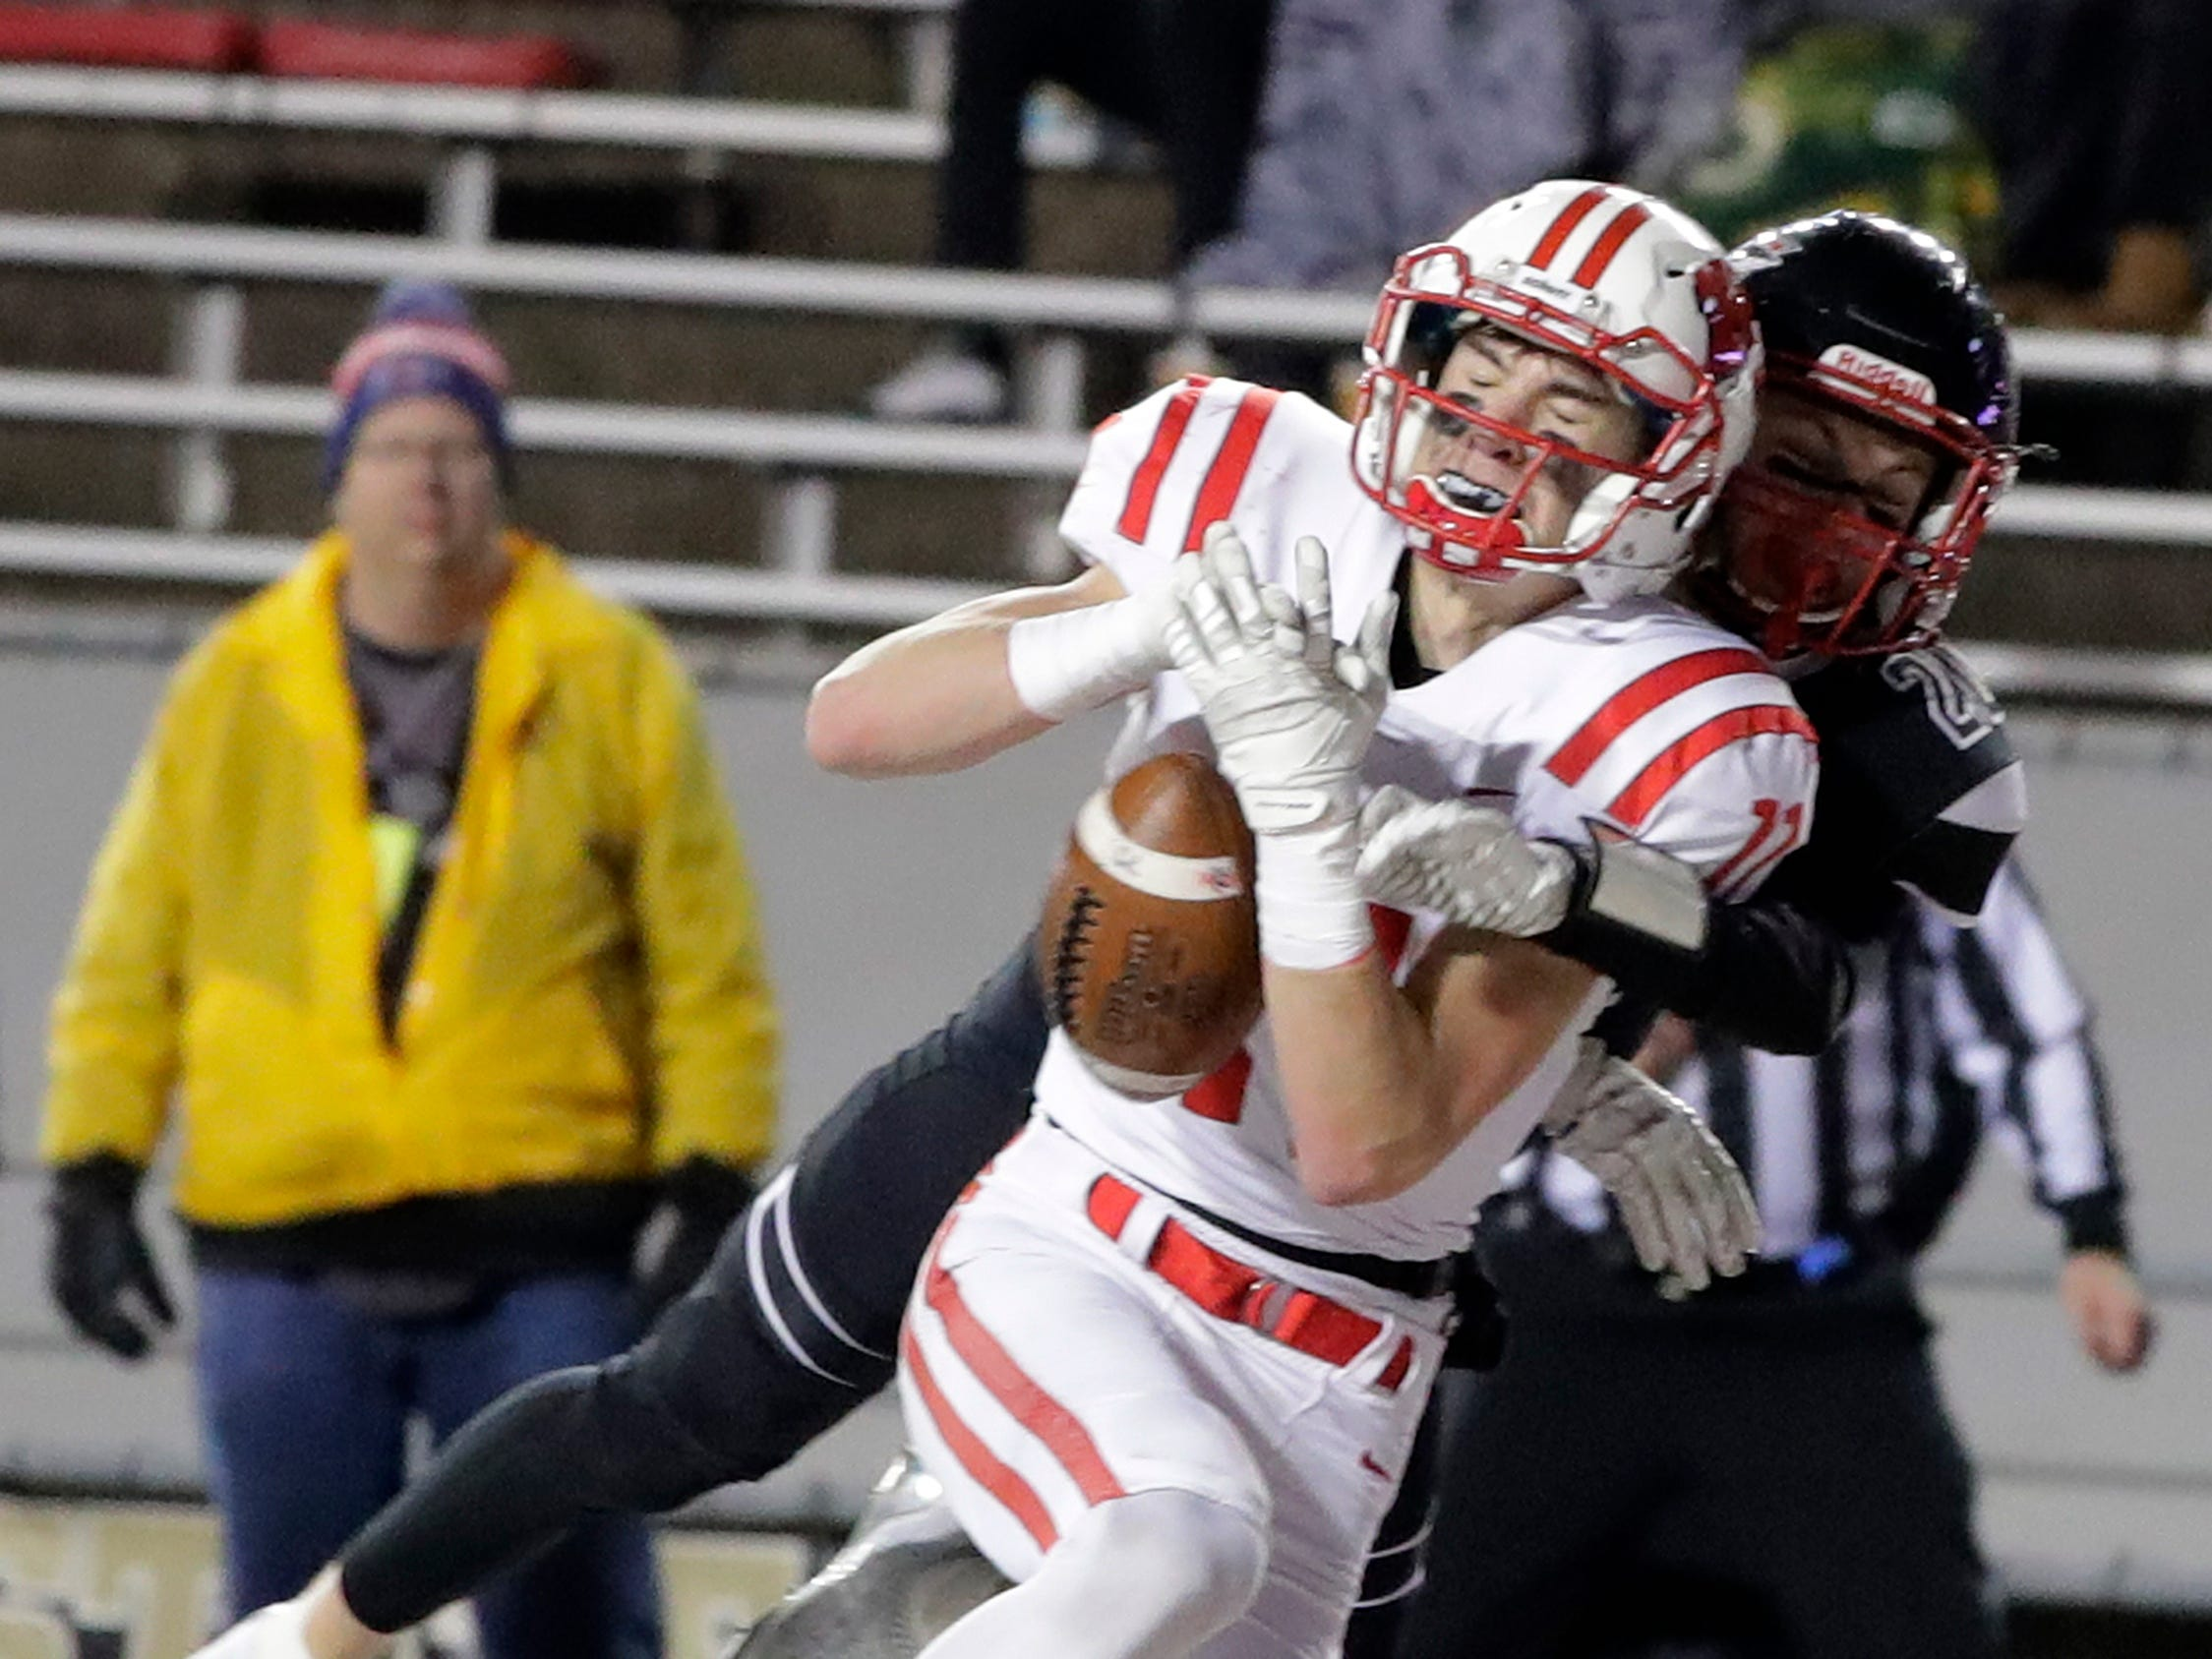 Kimberly's Connor Wnek (11) catches a touchdown pass against Muskego in the WIAA Division 1 championship game at Camp Randall Stadium on Friday, November 16, 2018 in Madison, Wis.